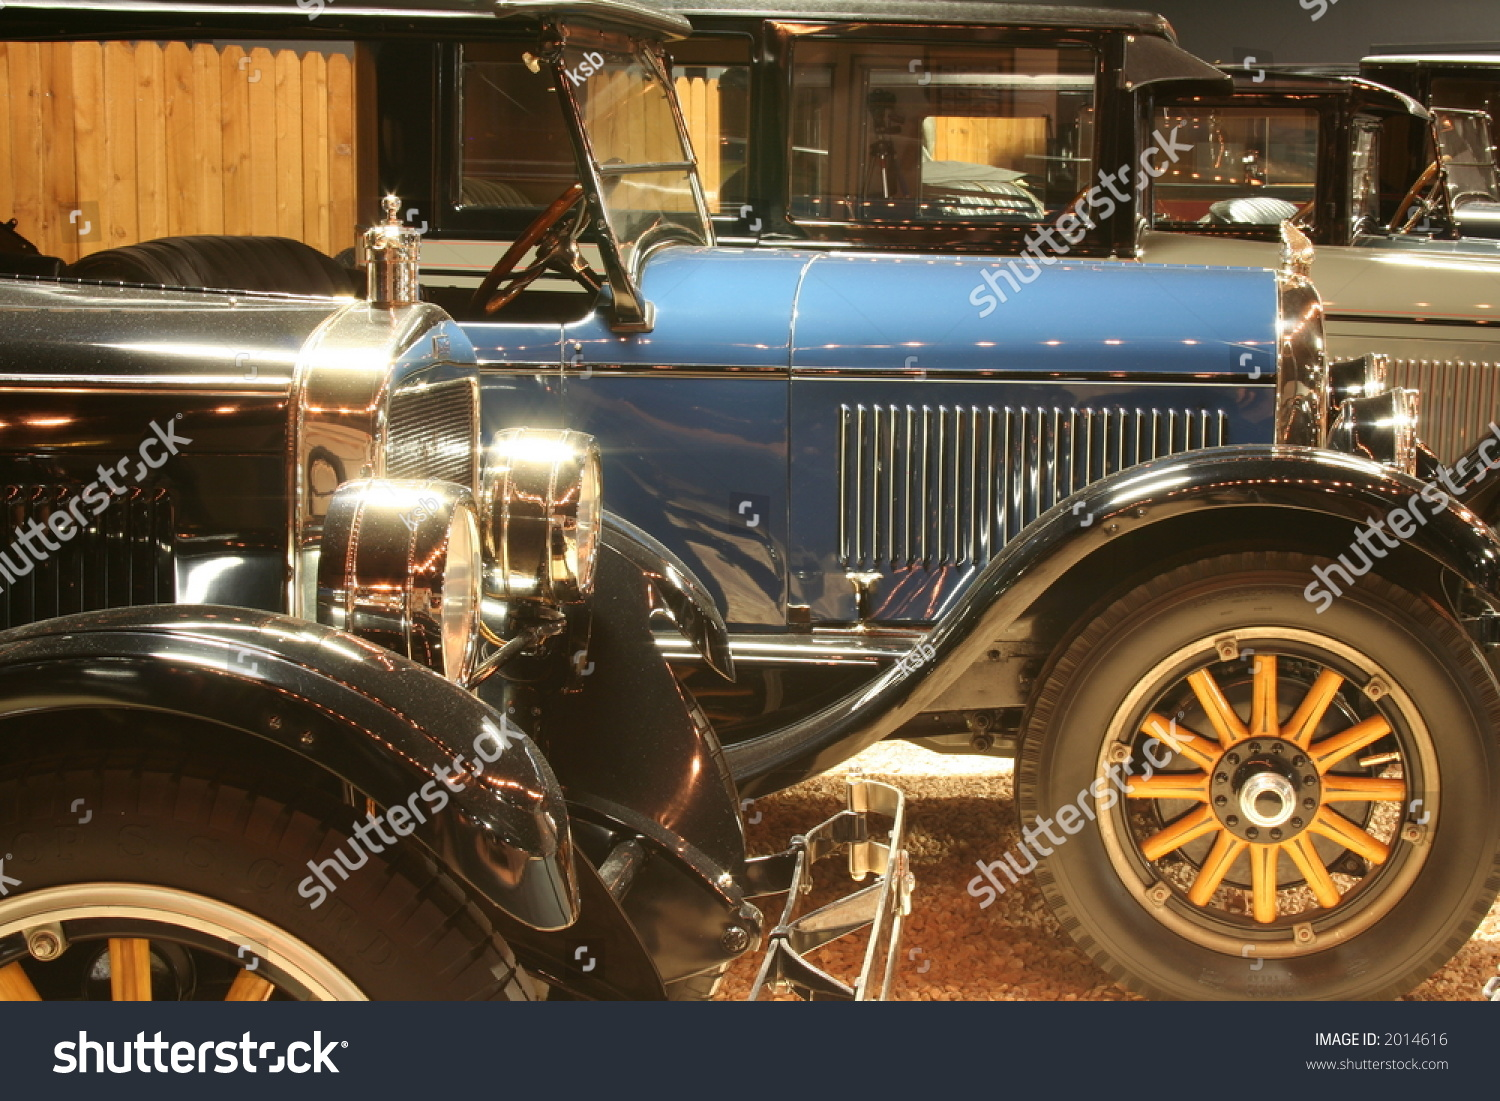 Vintage Antique Cars Stock Photo 2014616 - Shutterstock